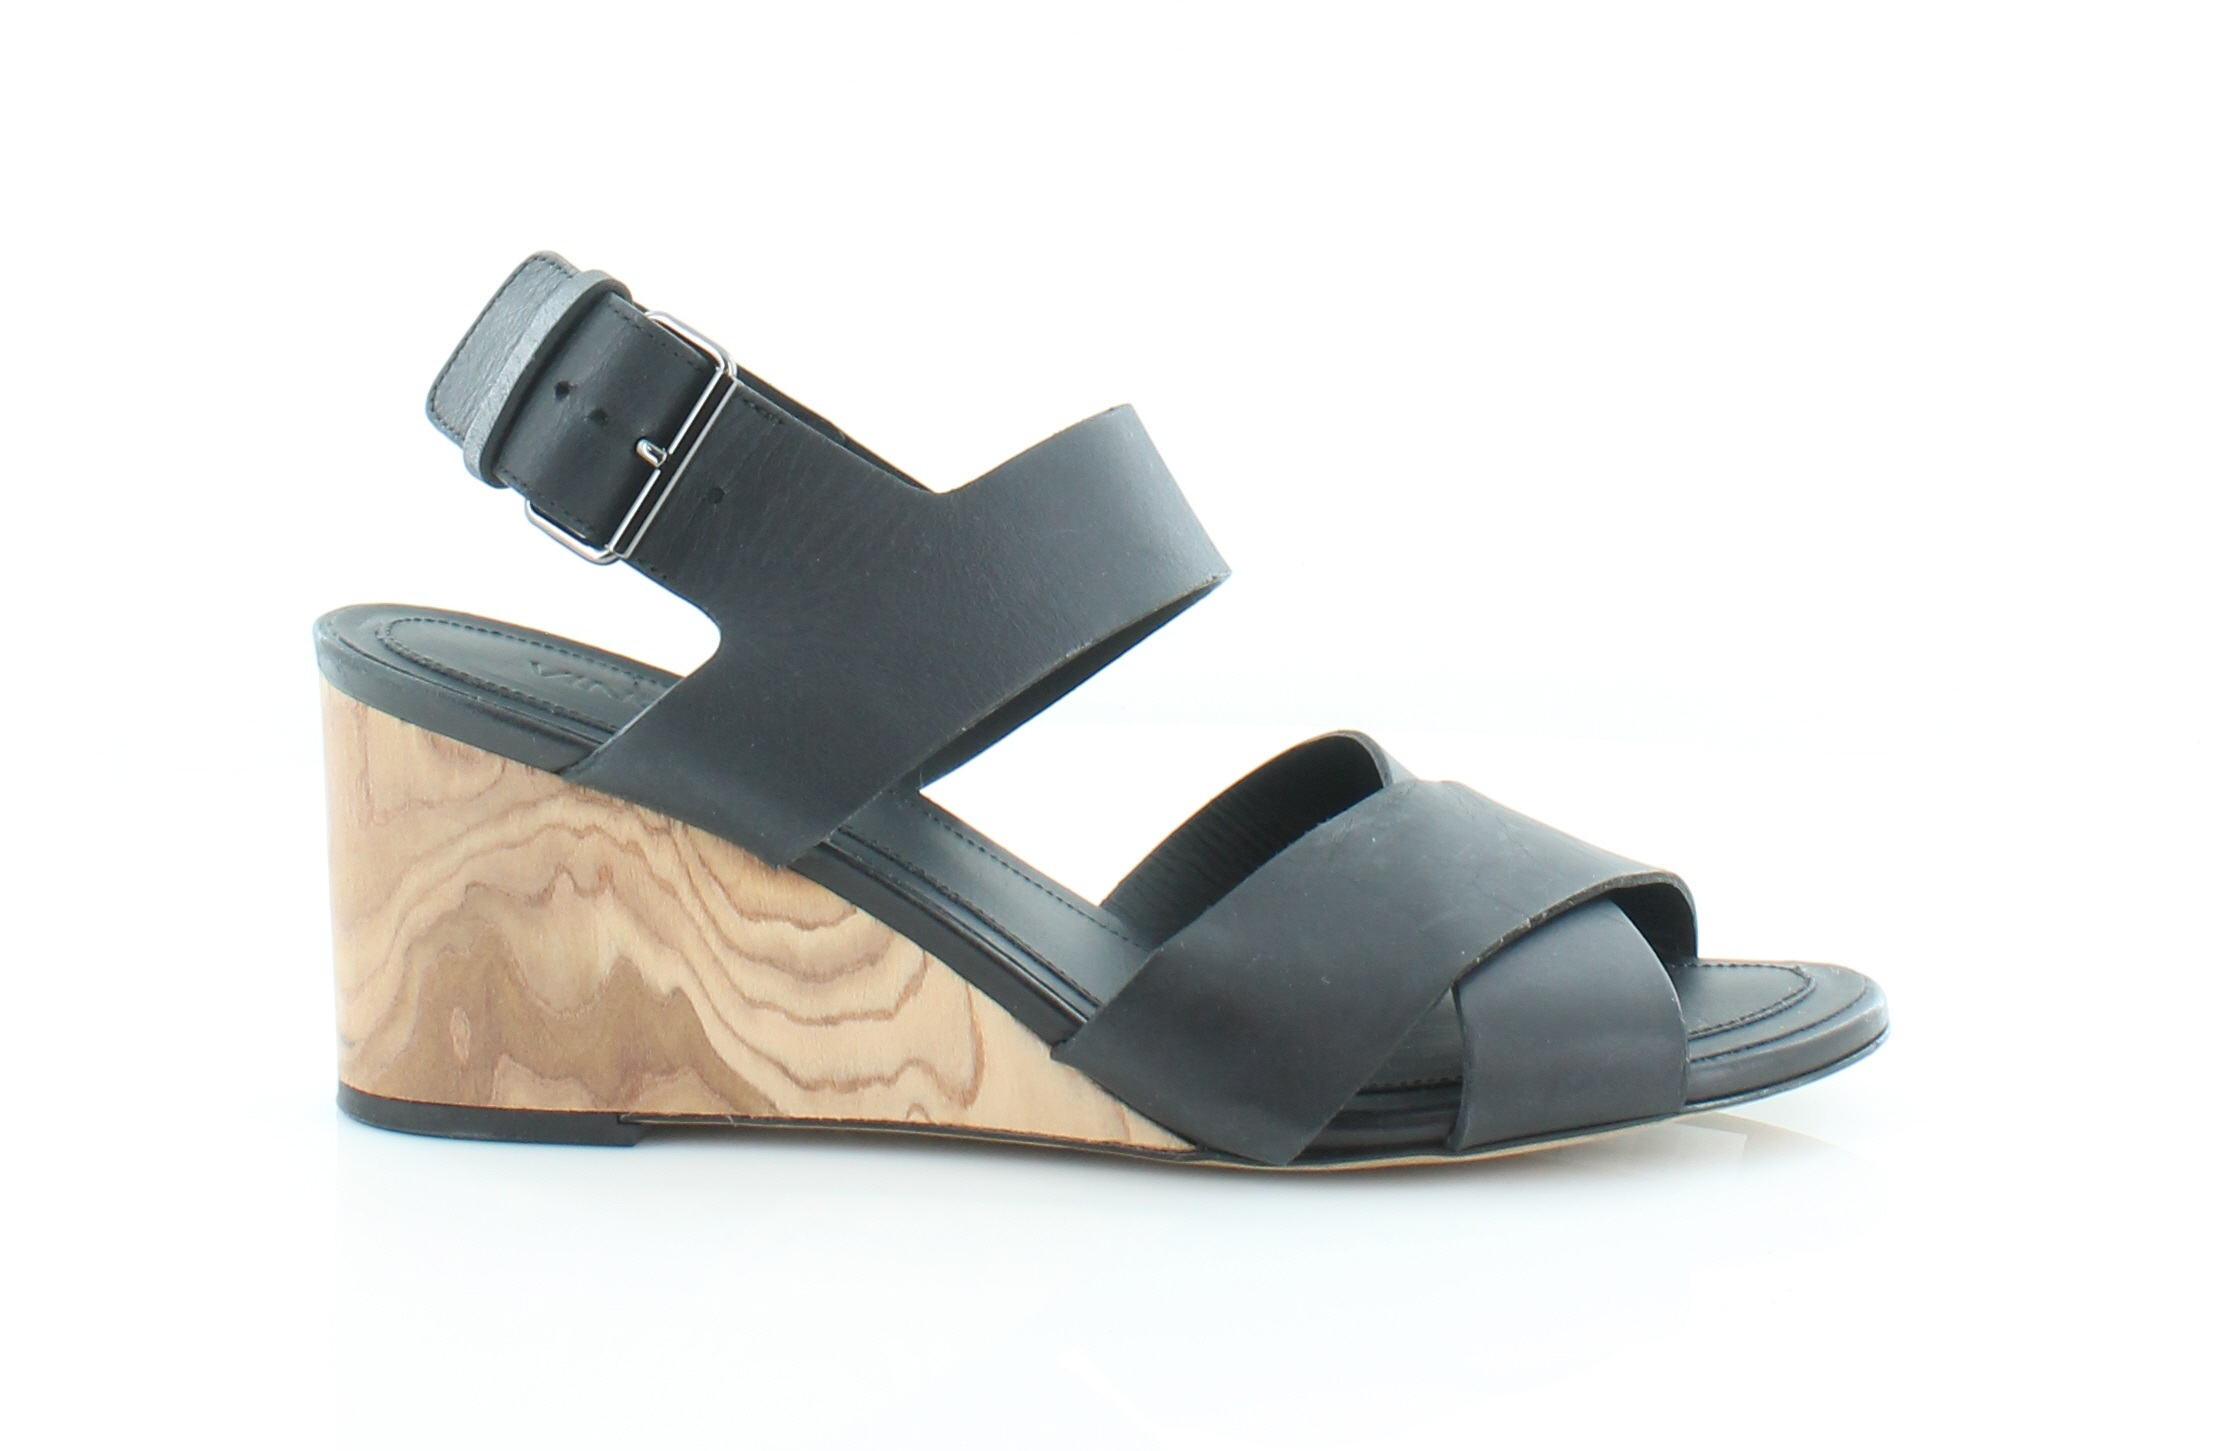 Vince Gwyn Black Womens Shoes Size 8.5 M Sandals MSRP $375